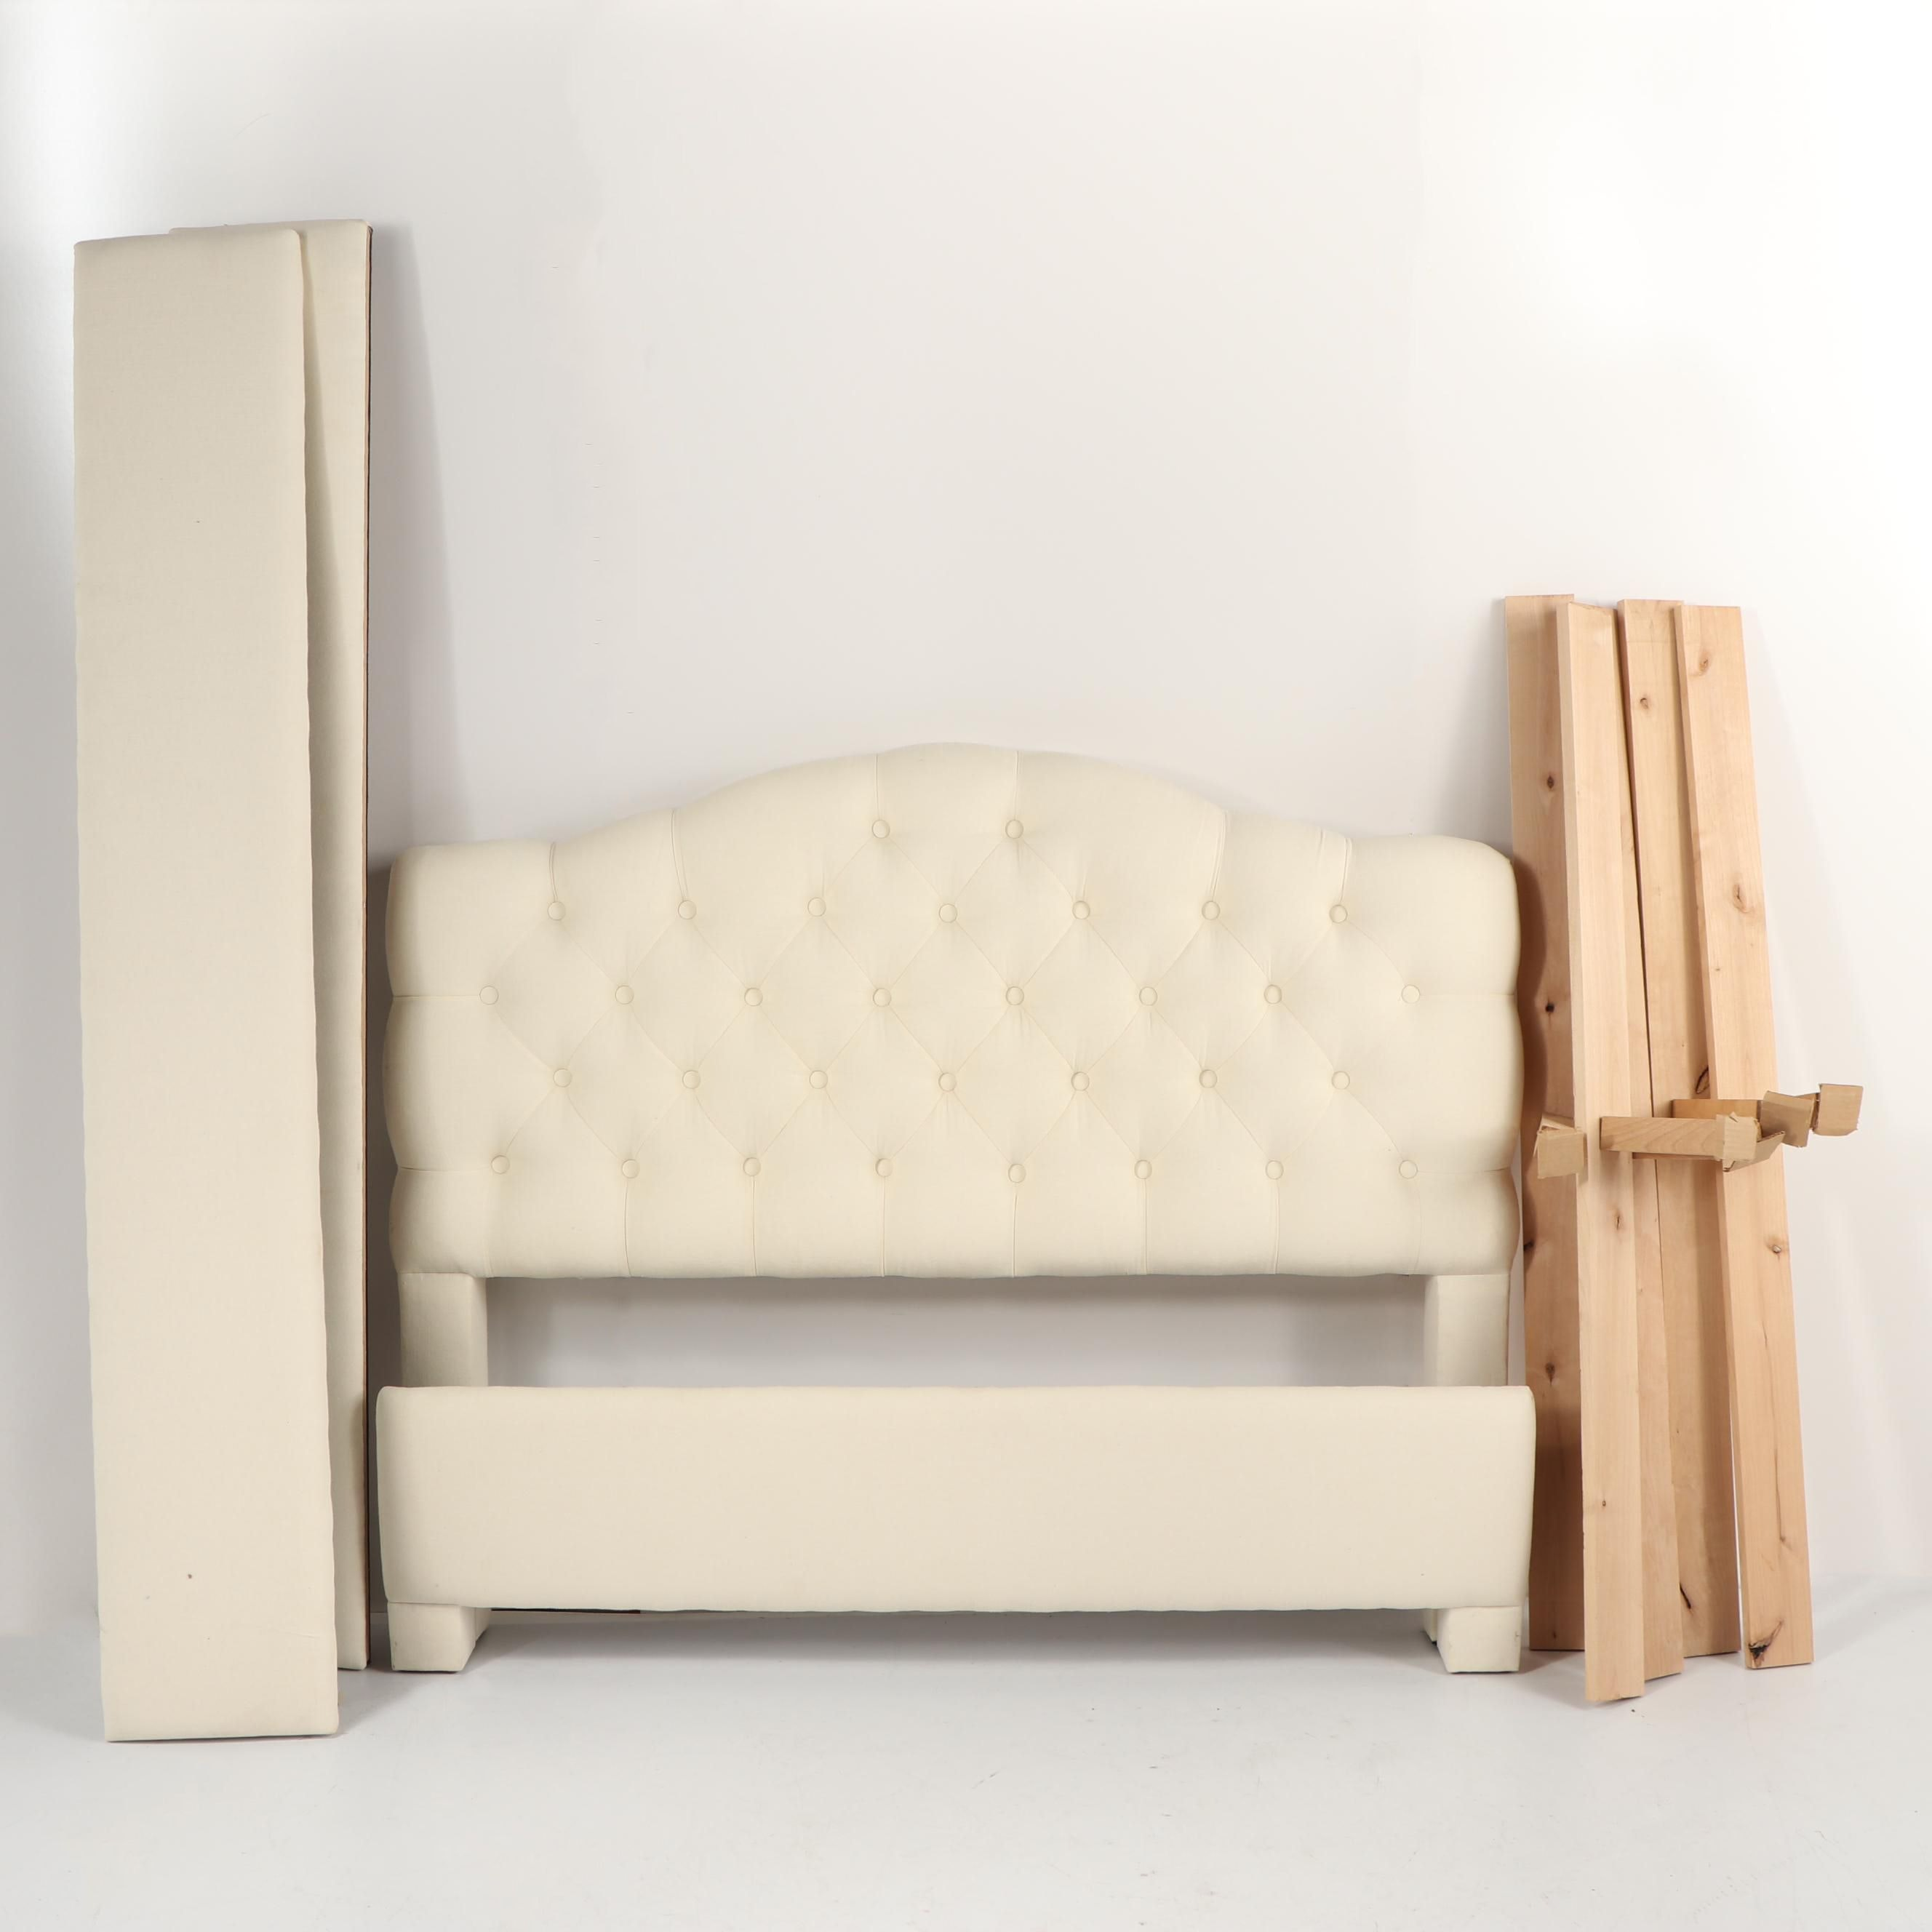 Tufted White Cotton Queen Size Bed Frame